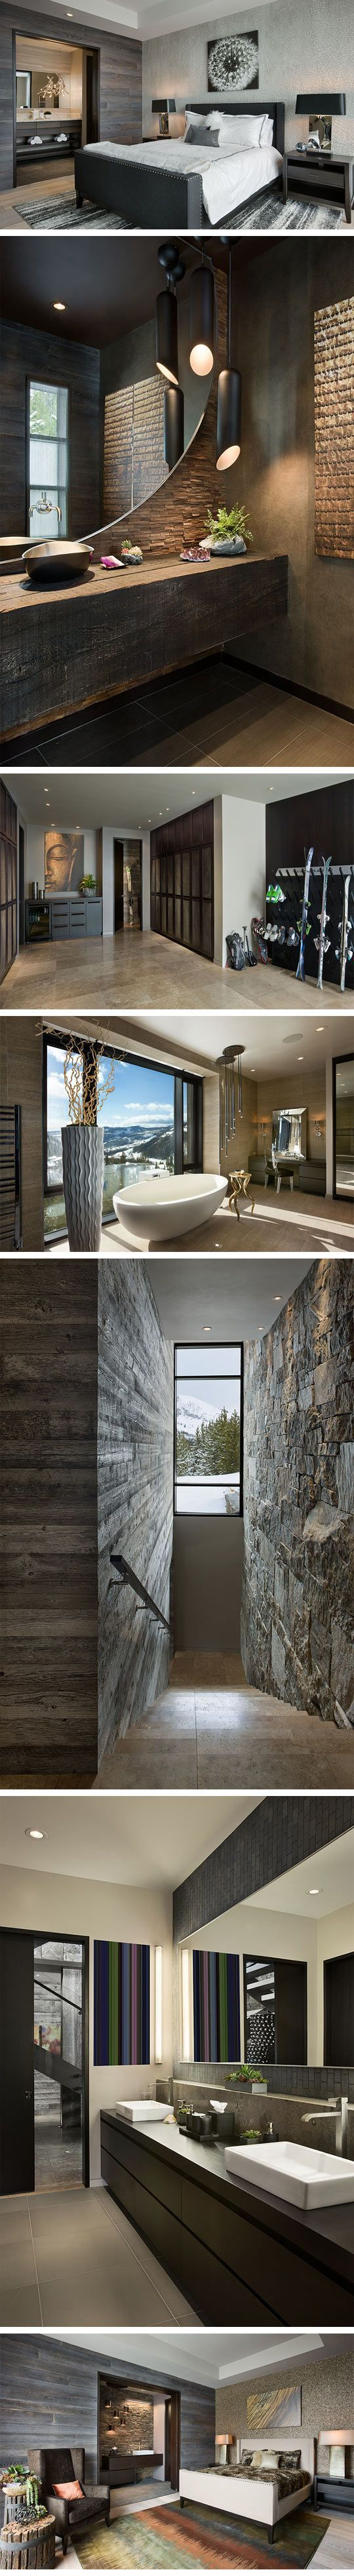 natural stone bathroom...love it project for don